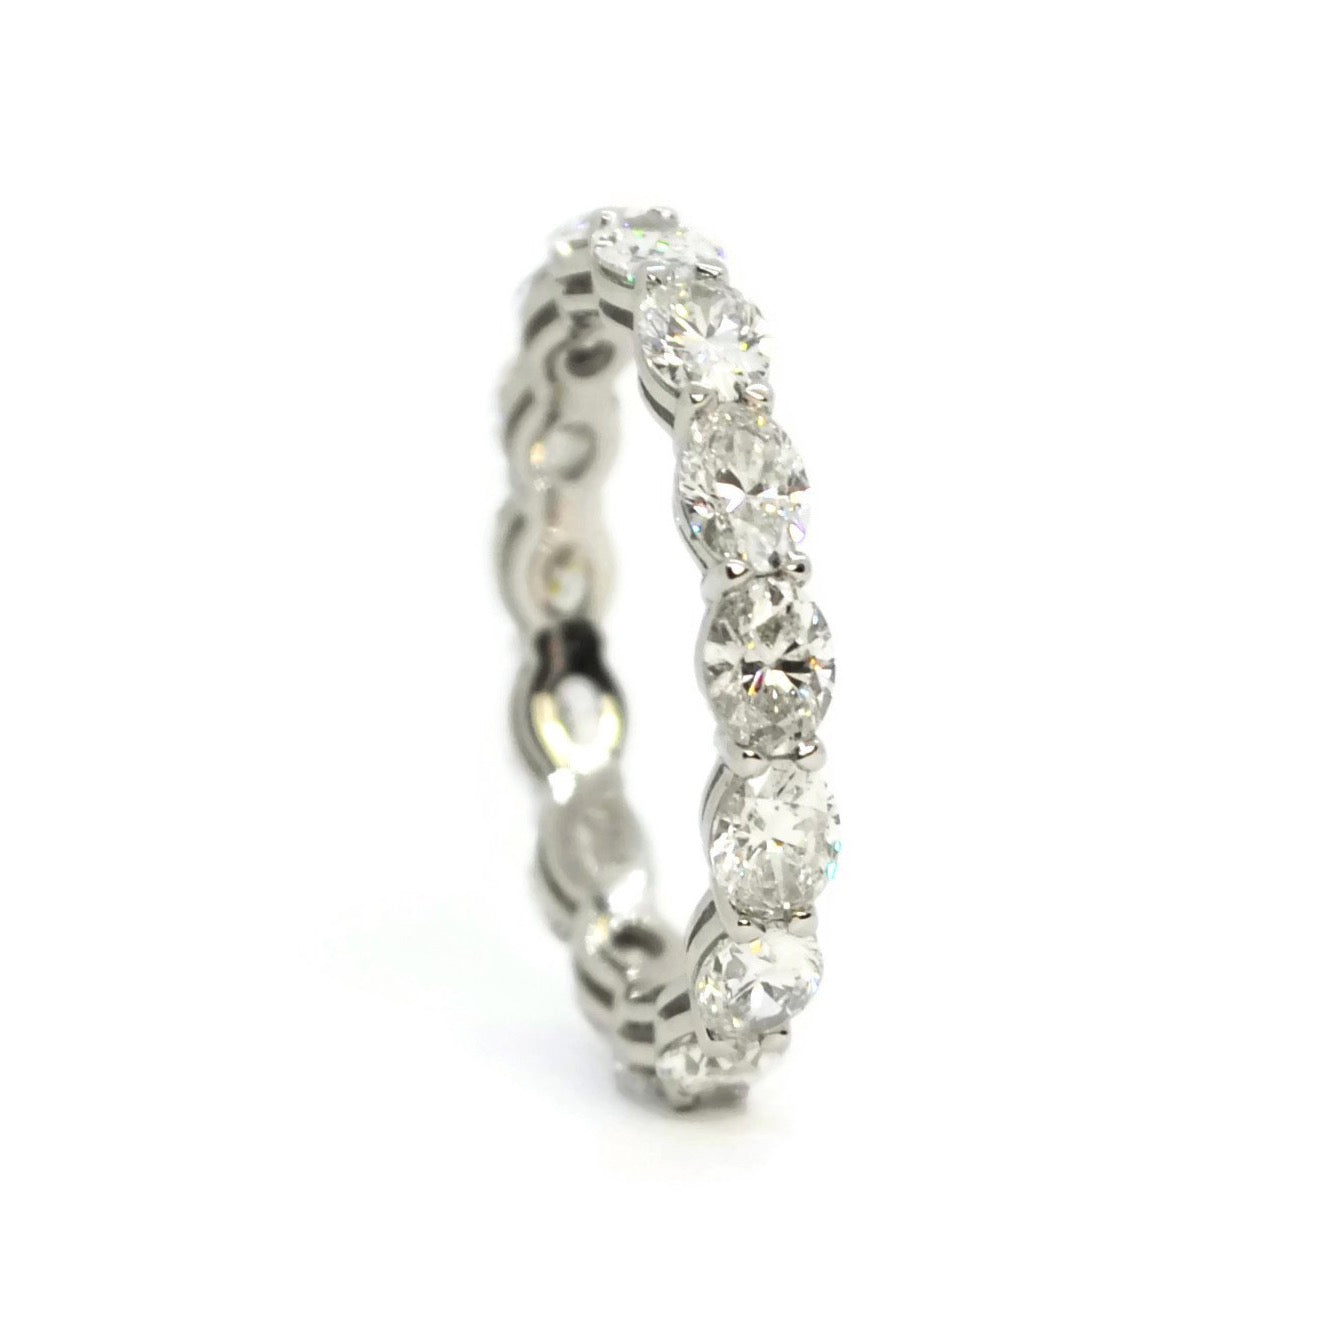 AF-JEWELERS-ETERNITY-BAND-OVAL-CUT-DIAMONDS-PLATINUM-A91824P1-OV-hrz